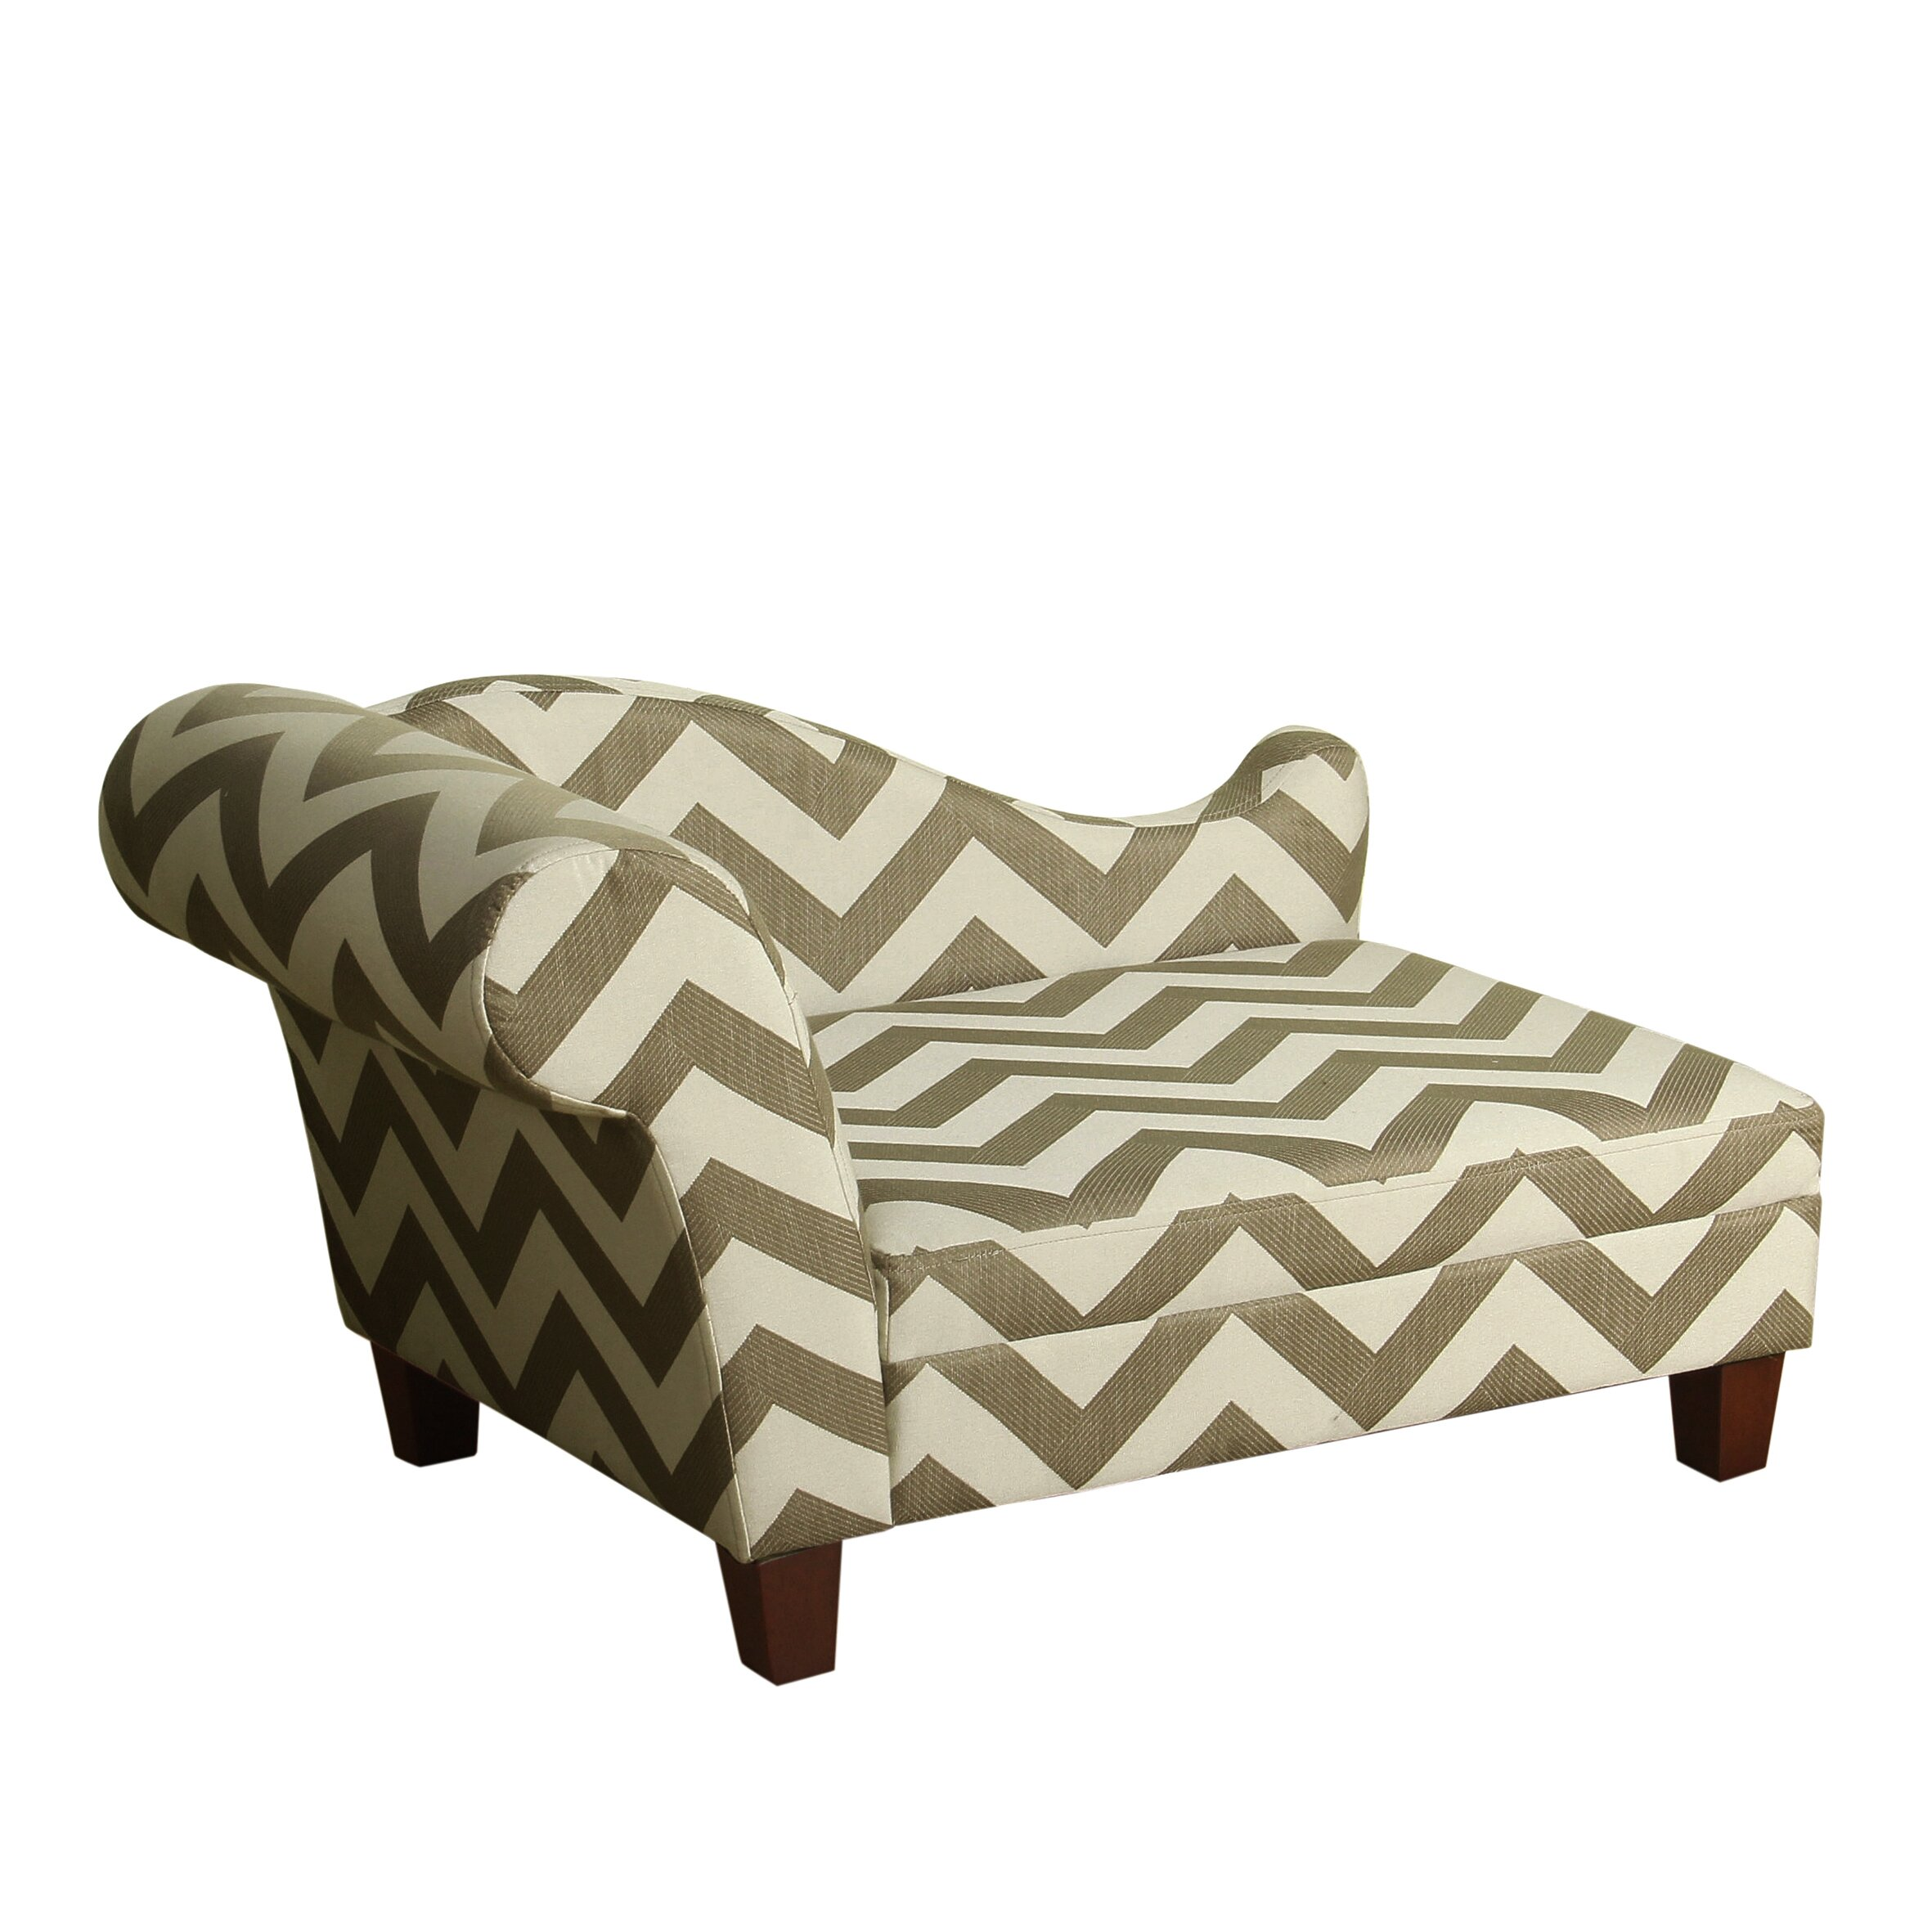 Sophisticated decorative dog chaise lounger wayfair for Chaise decorative